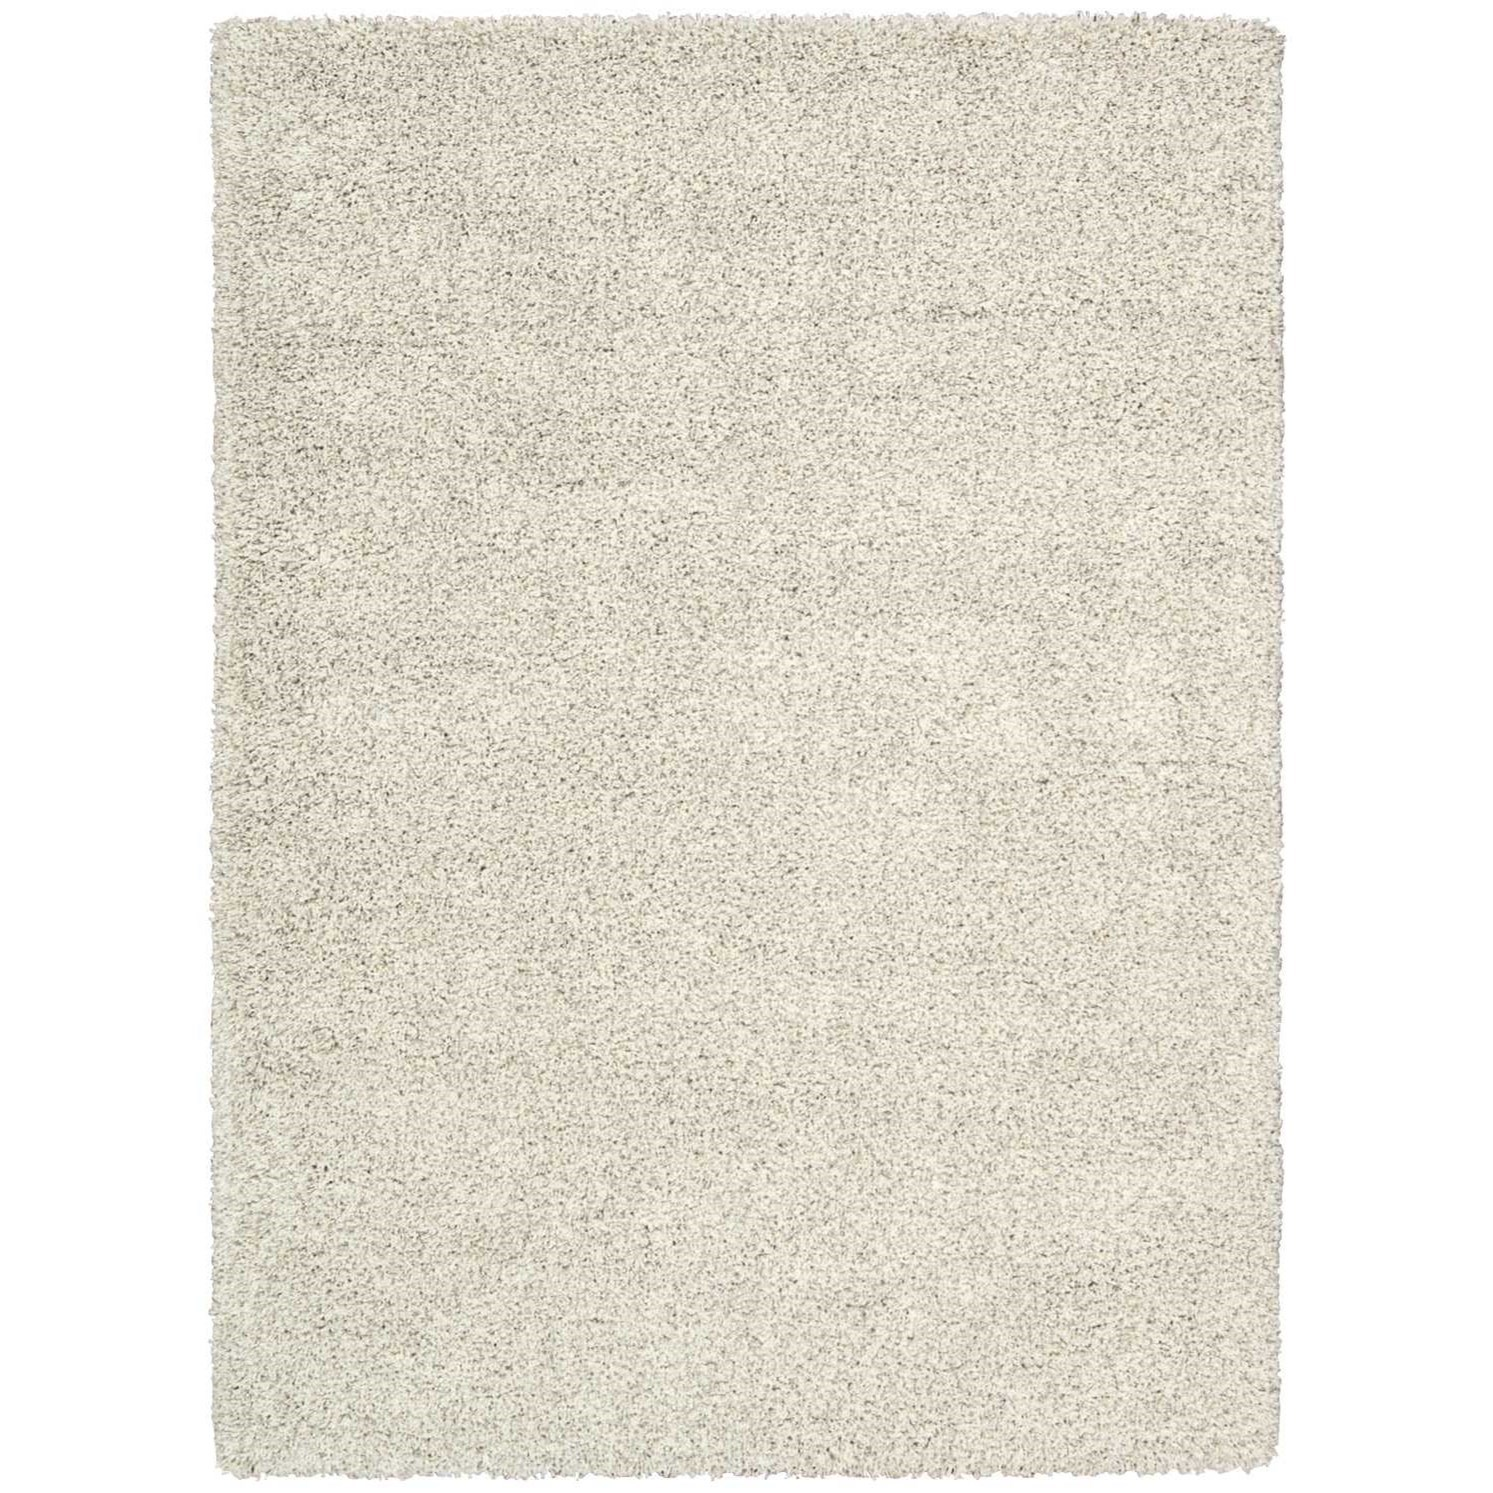 "Amore 7'10"" x 10'10"" Bone Rectangle Rug by Nourison at Home Collections Furniture"